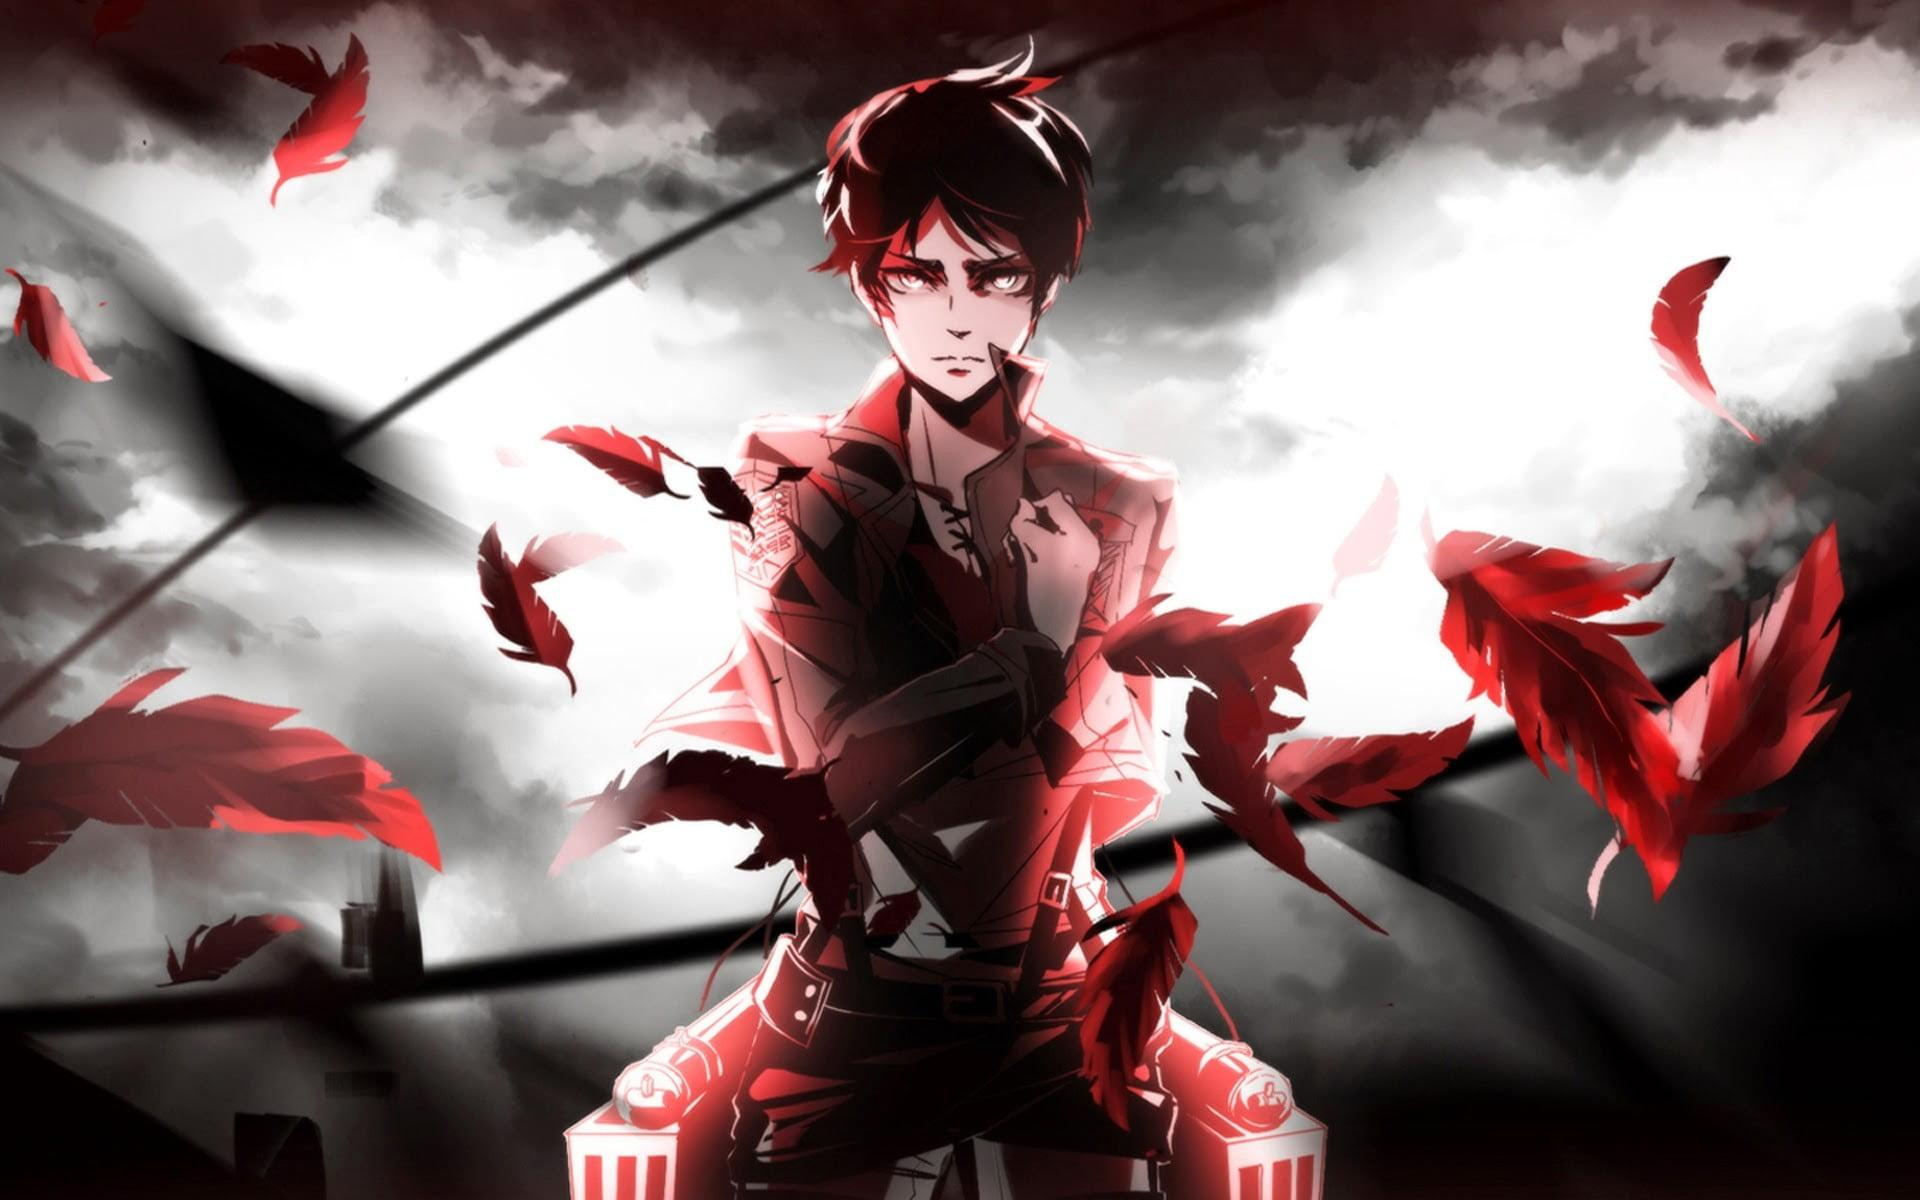 Eren Yeager from Attack on Titan wallpaper, Shingeki no Kyojin, Eren